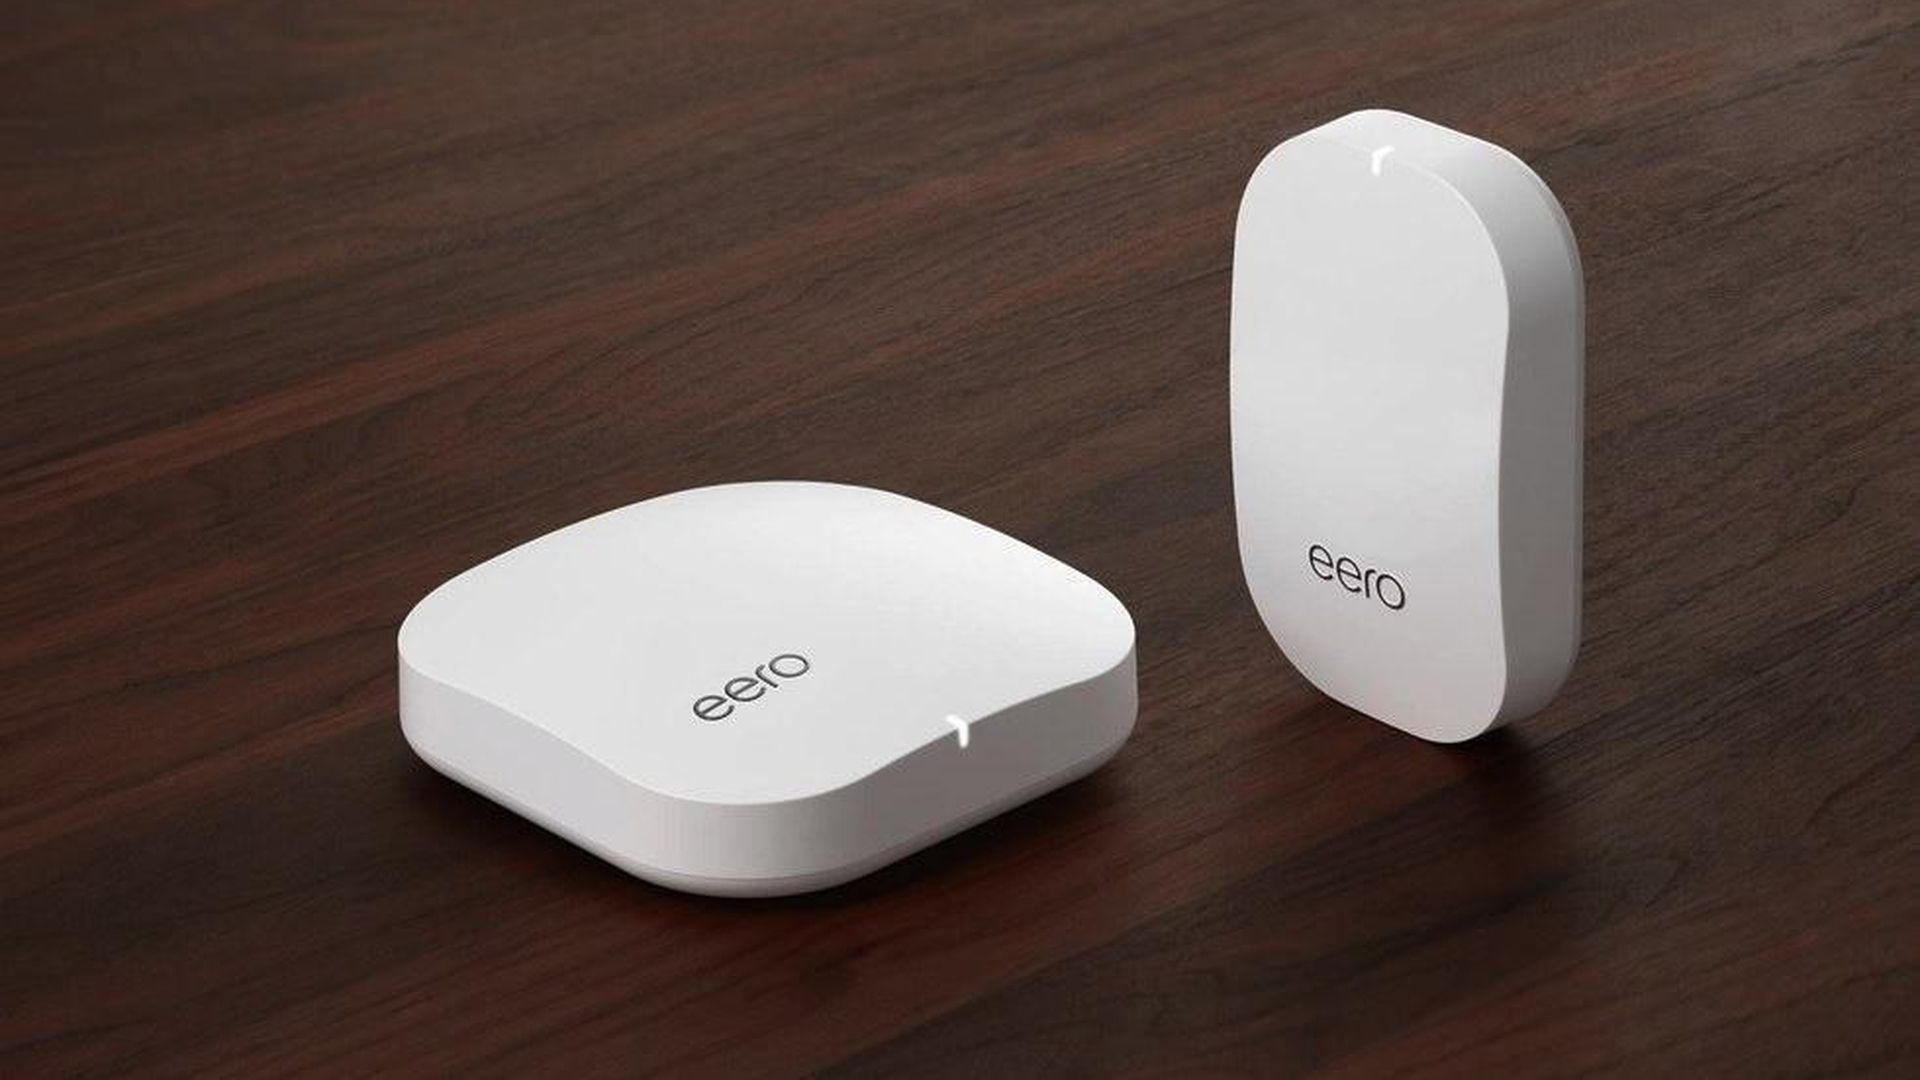 Eero's mesh routers make it easier to spread fast Wi-Fi throughout the home.